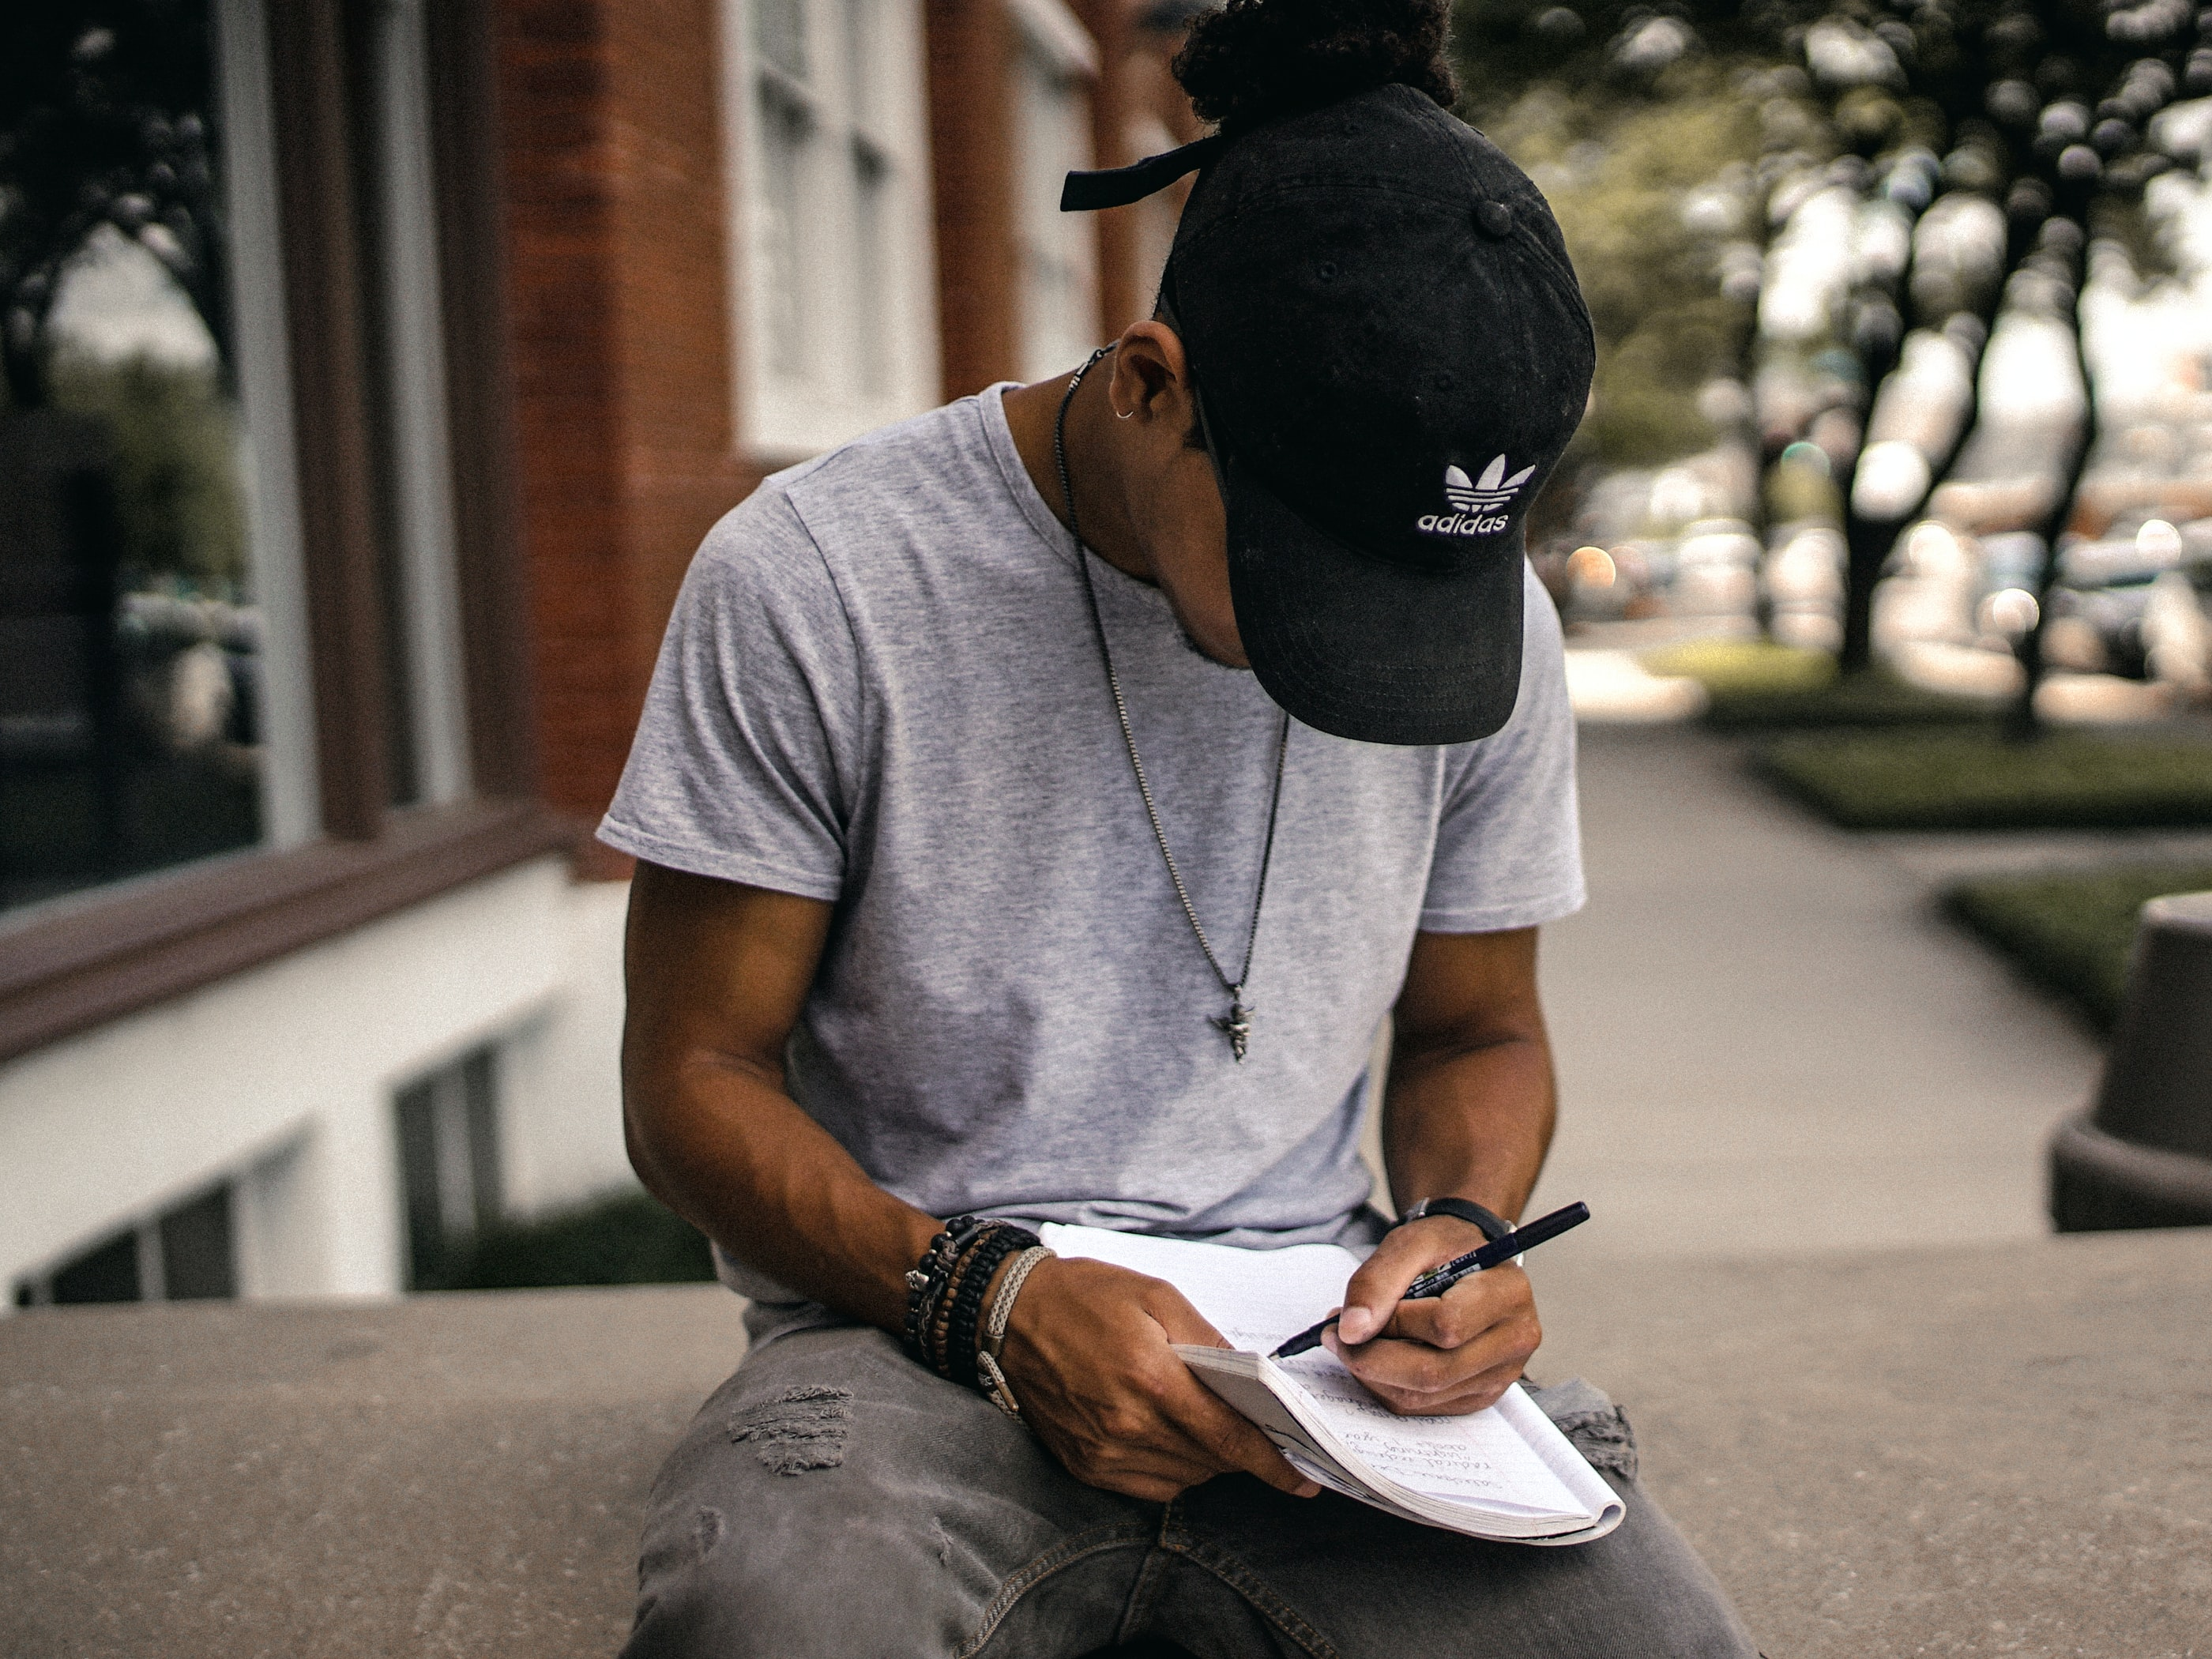 A man in a baseball cap taking notes while sitting on a concrete ledge outdoors